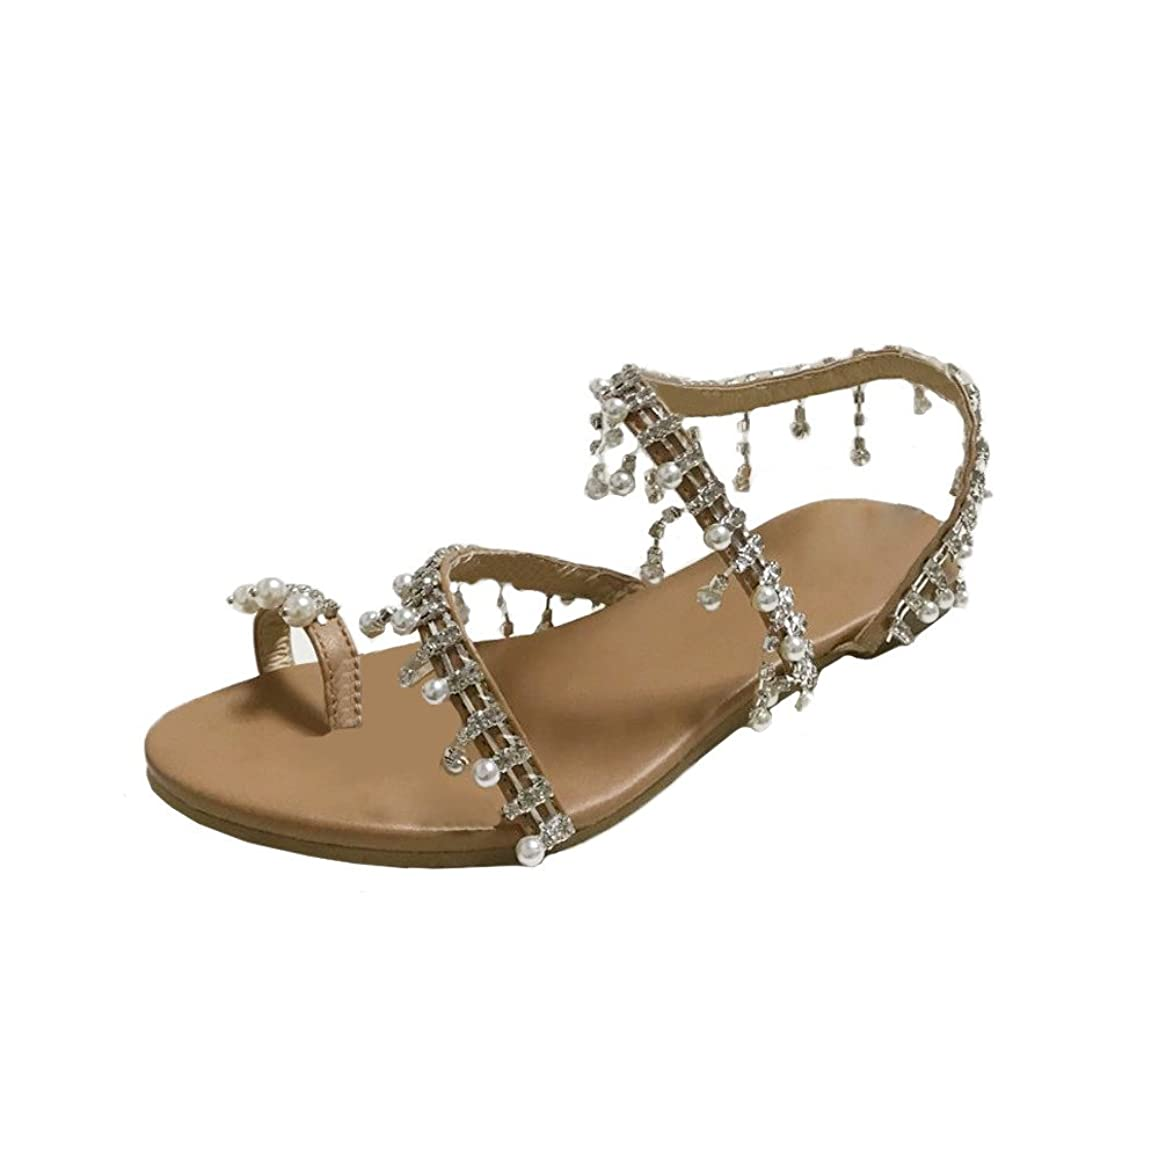 Women Flat Shoes, JOYFEEL ?? Ladies Casual Round Toe Beaded Beach Sandals Sexy Pearl Summer Ankle Strap Sandals